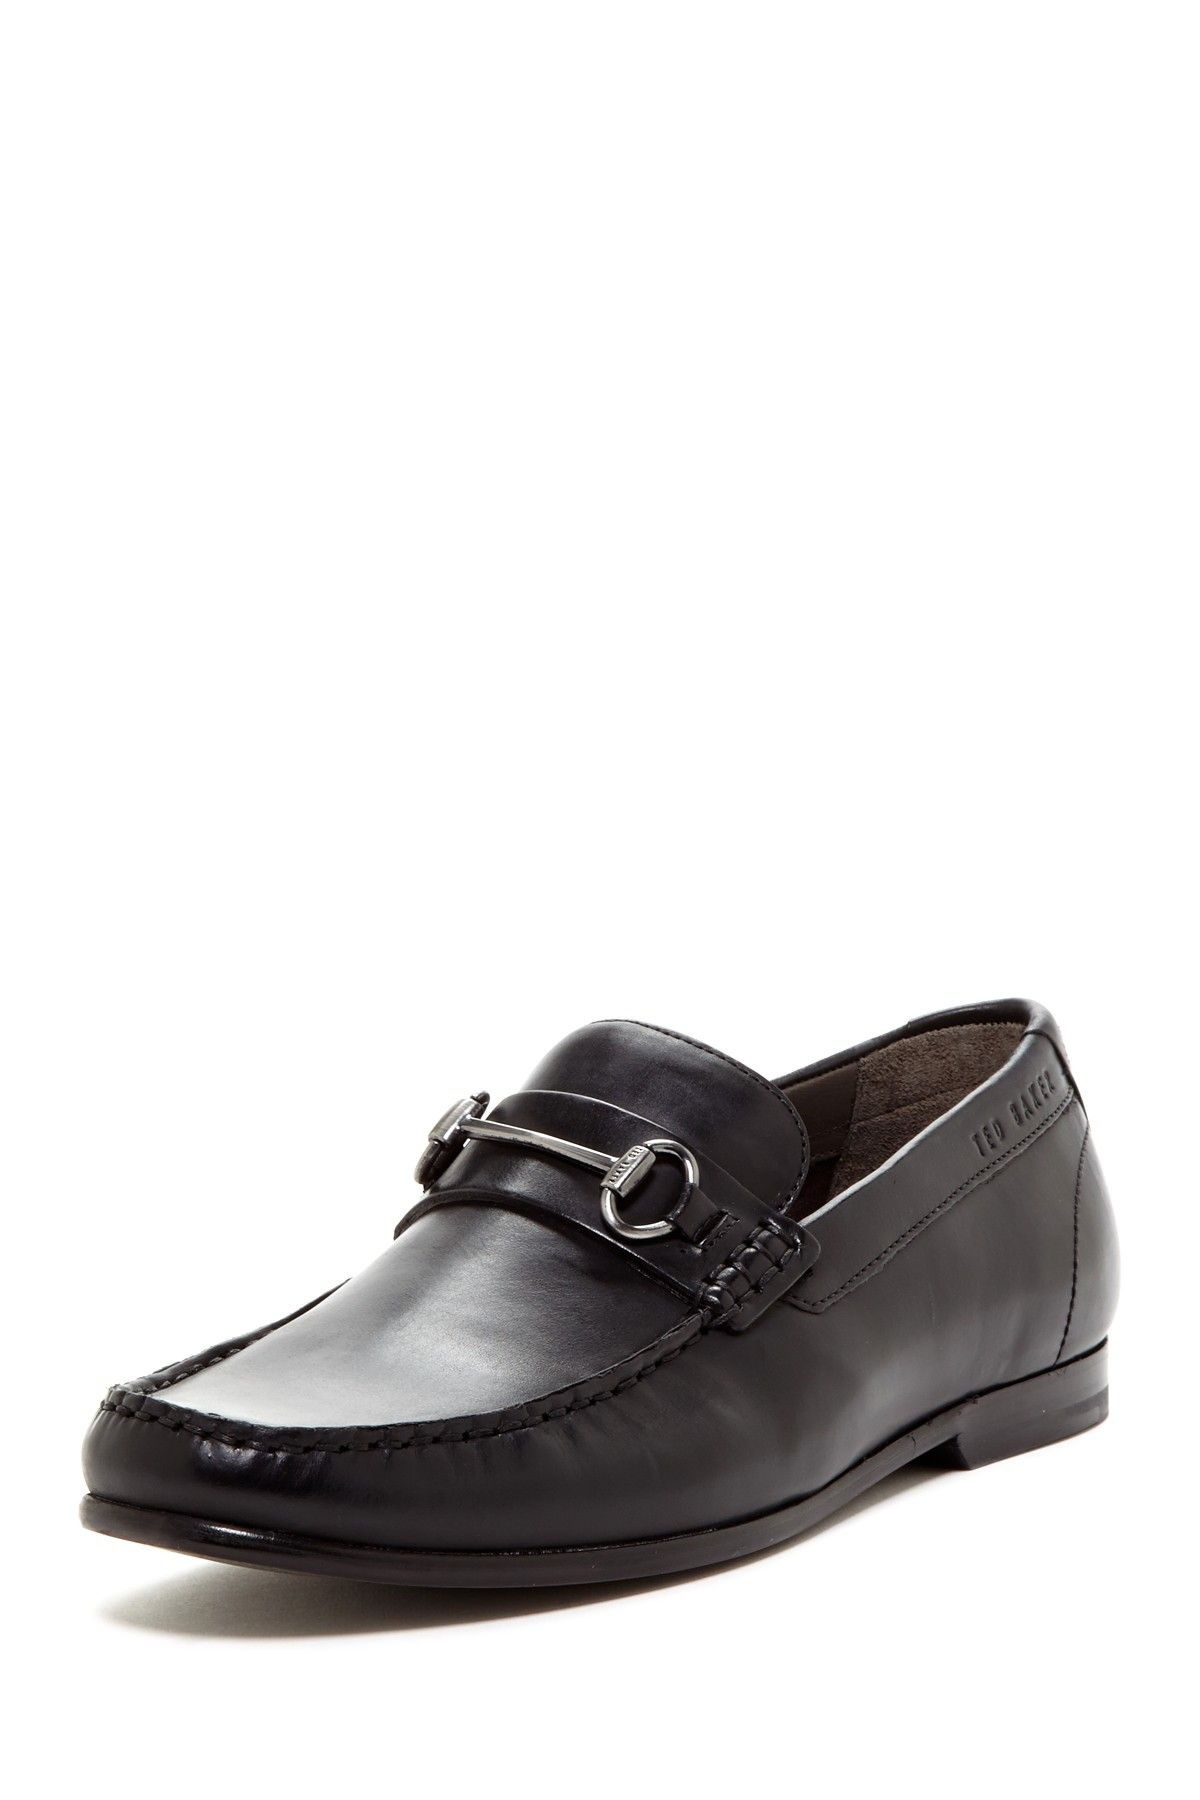 Ted Baker Braddle Loafer  #Baker # #